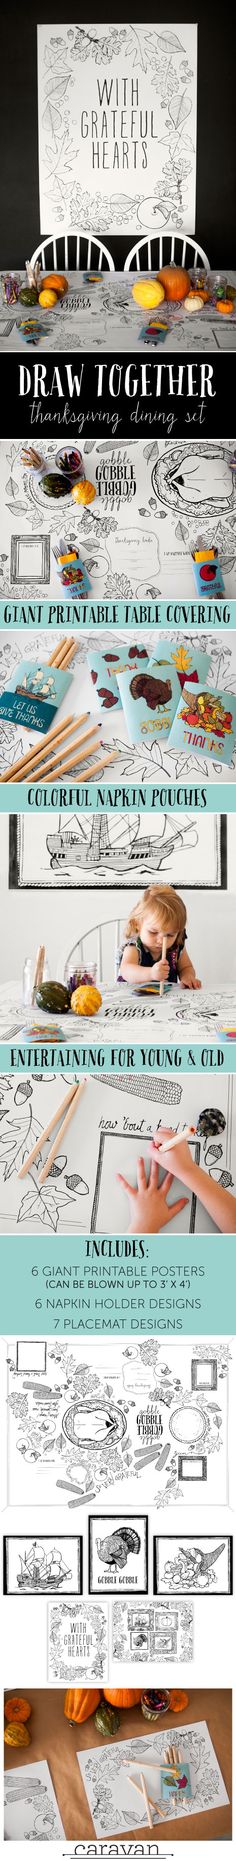 Easy printable Thanksgiving table decor. Works great for kids' table AND for grown-ups too! $8 for set that includes tablecloth/runner, 7 placemat designs, wall poster/giant coloring pages, and 6 name card napkin pouches